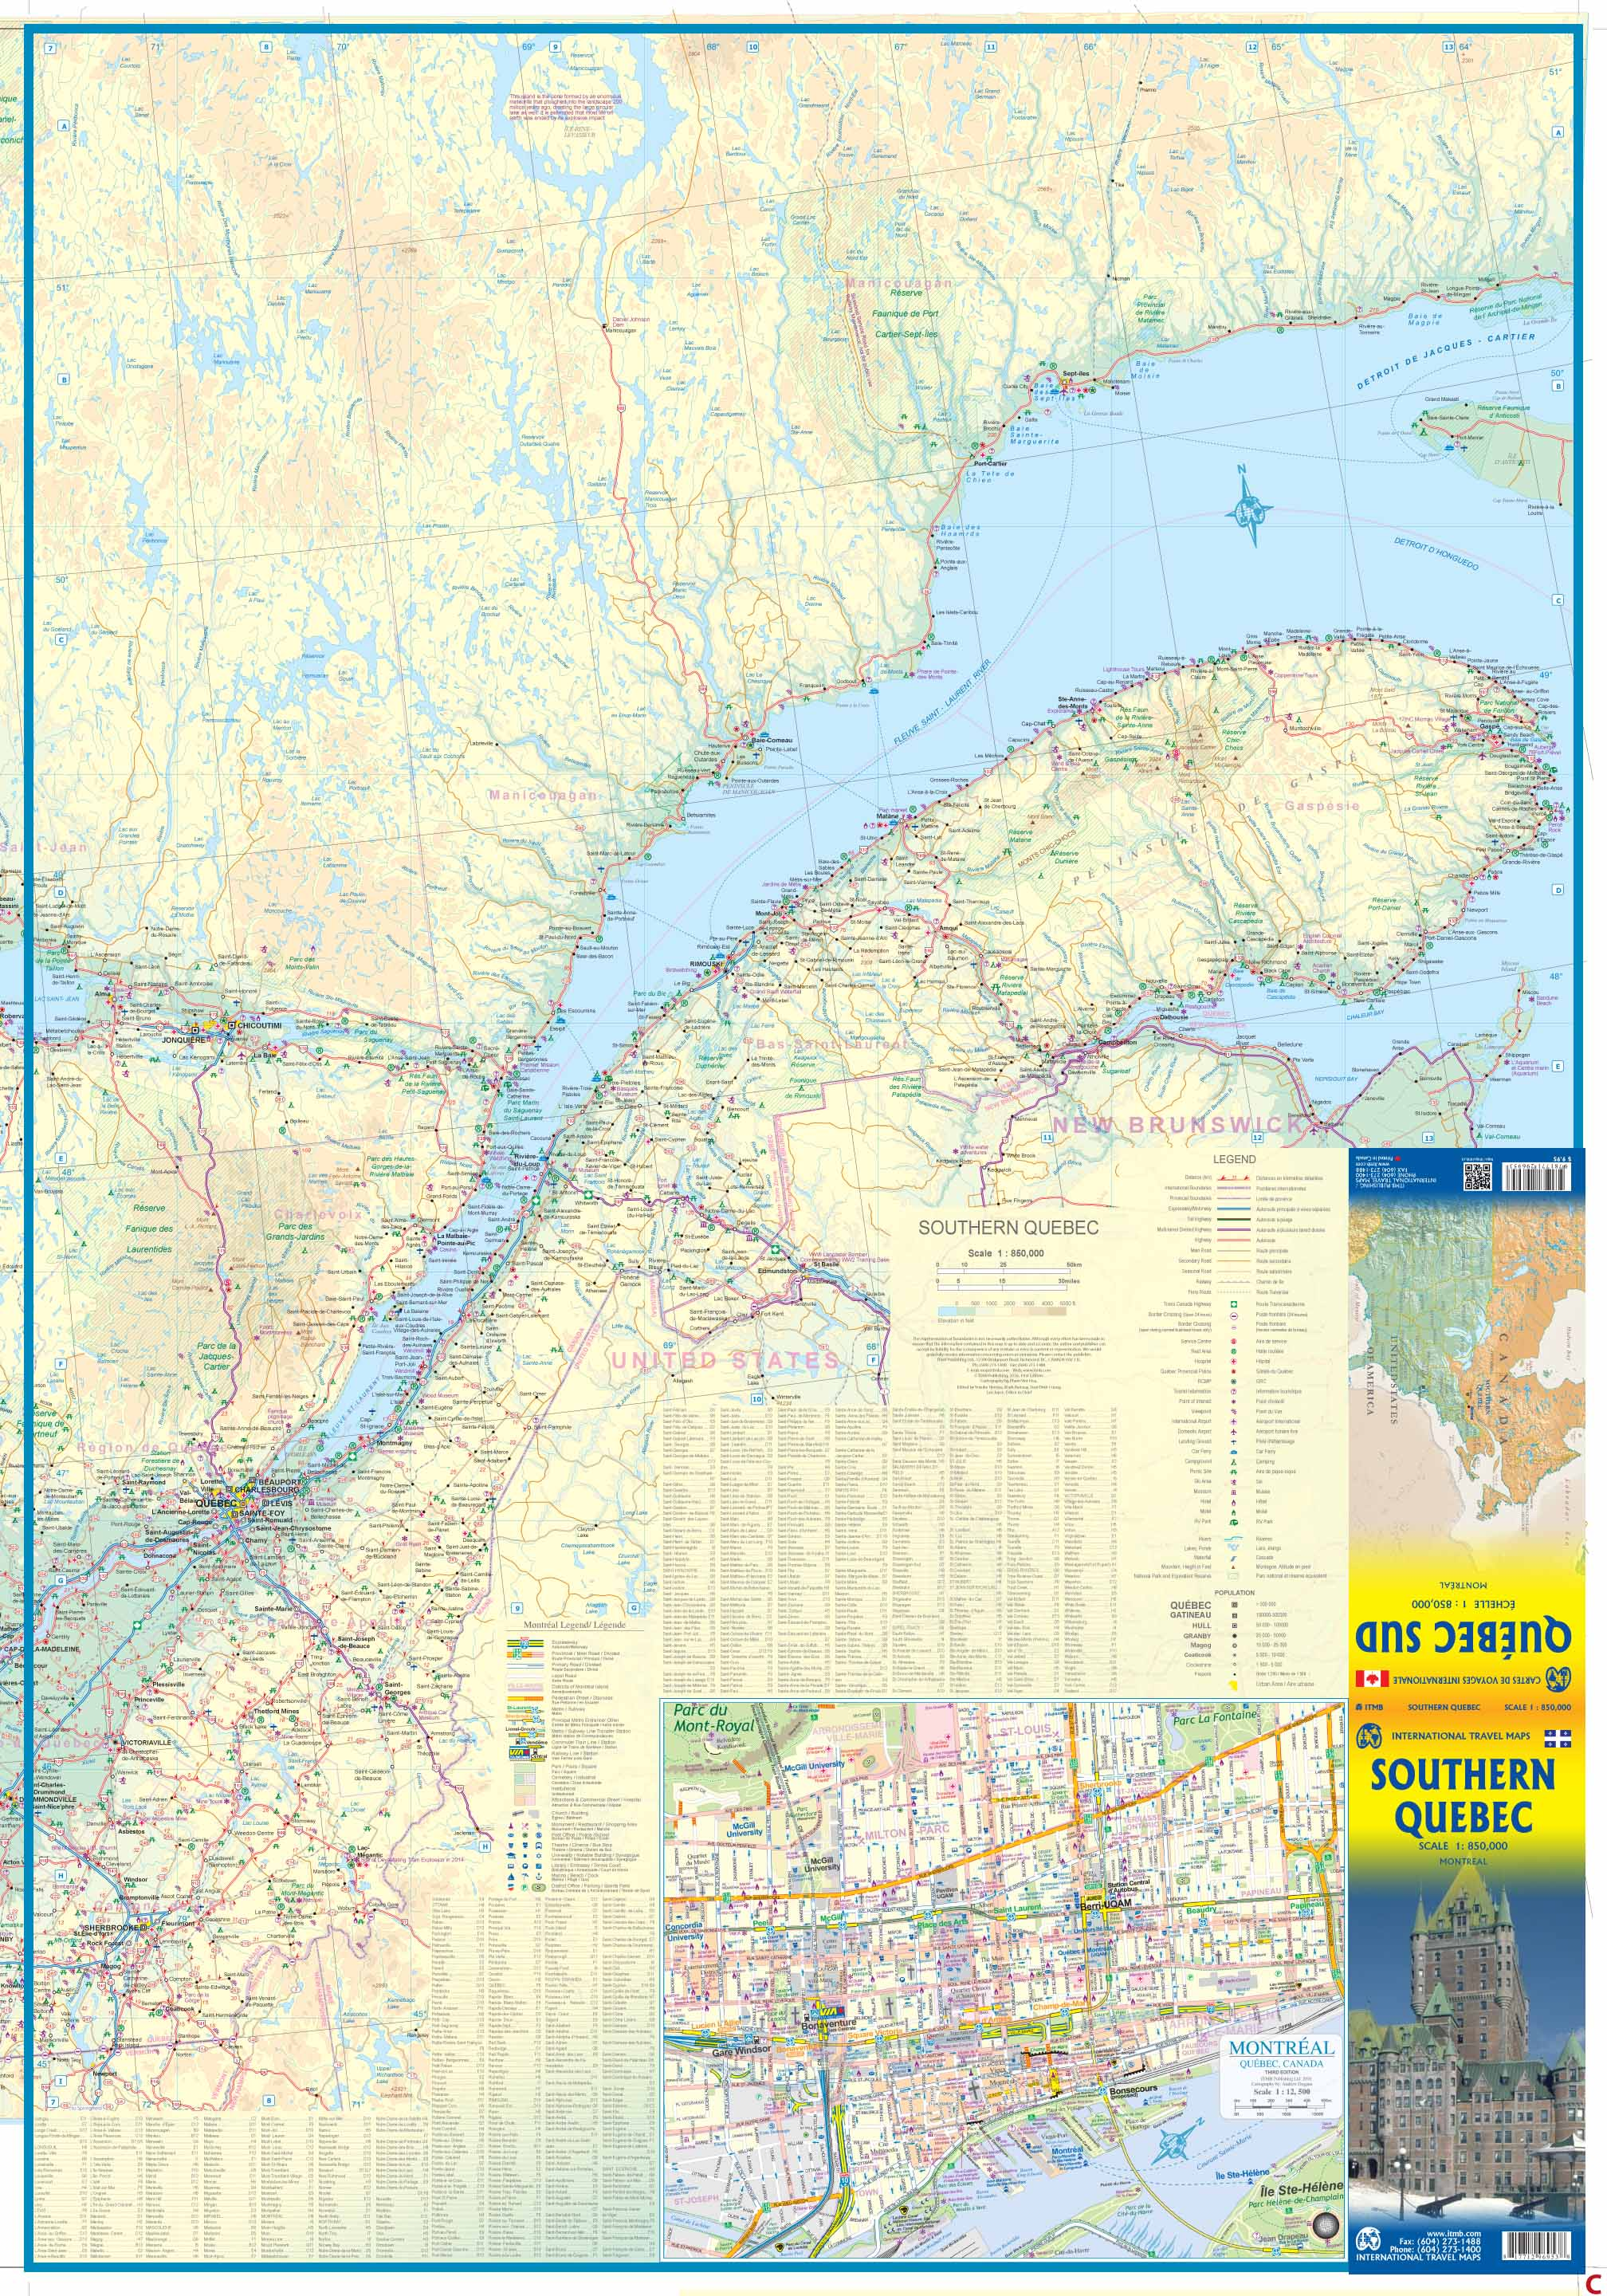 Quebec Topographic Map.Maps For Travel City Maps Road Maps Guides Globes Topographic Maps